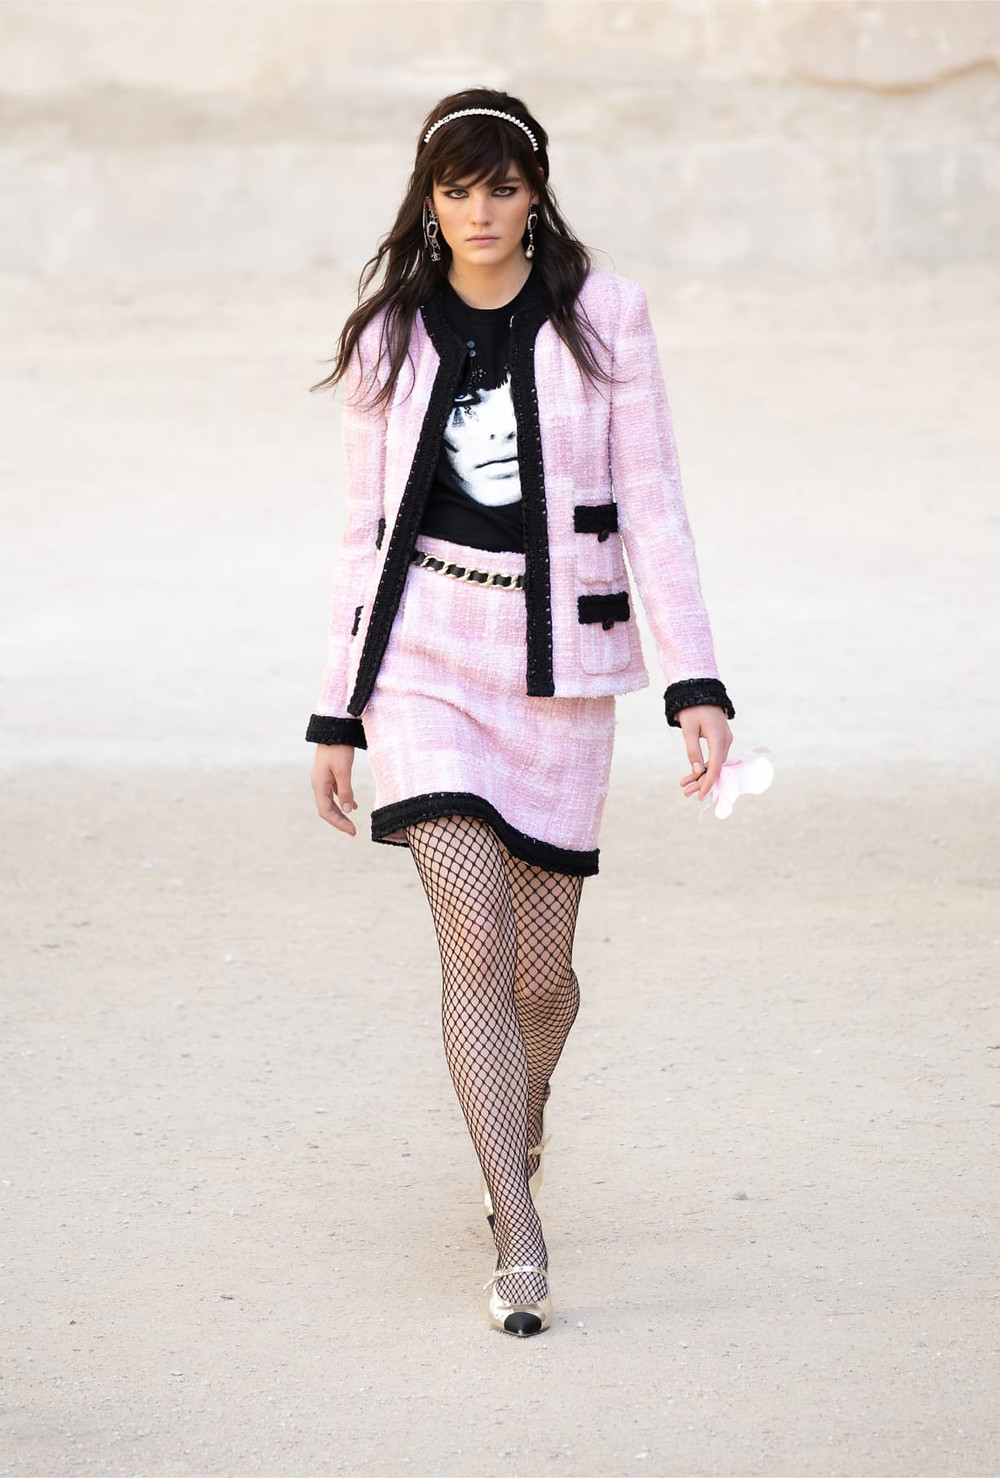 Chanel Channels Woodstock In The Cruise 2022 Collection